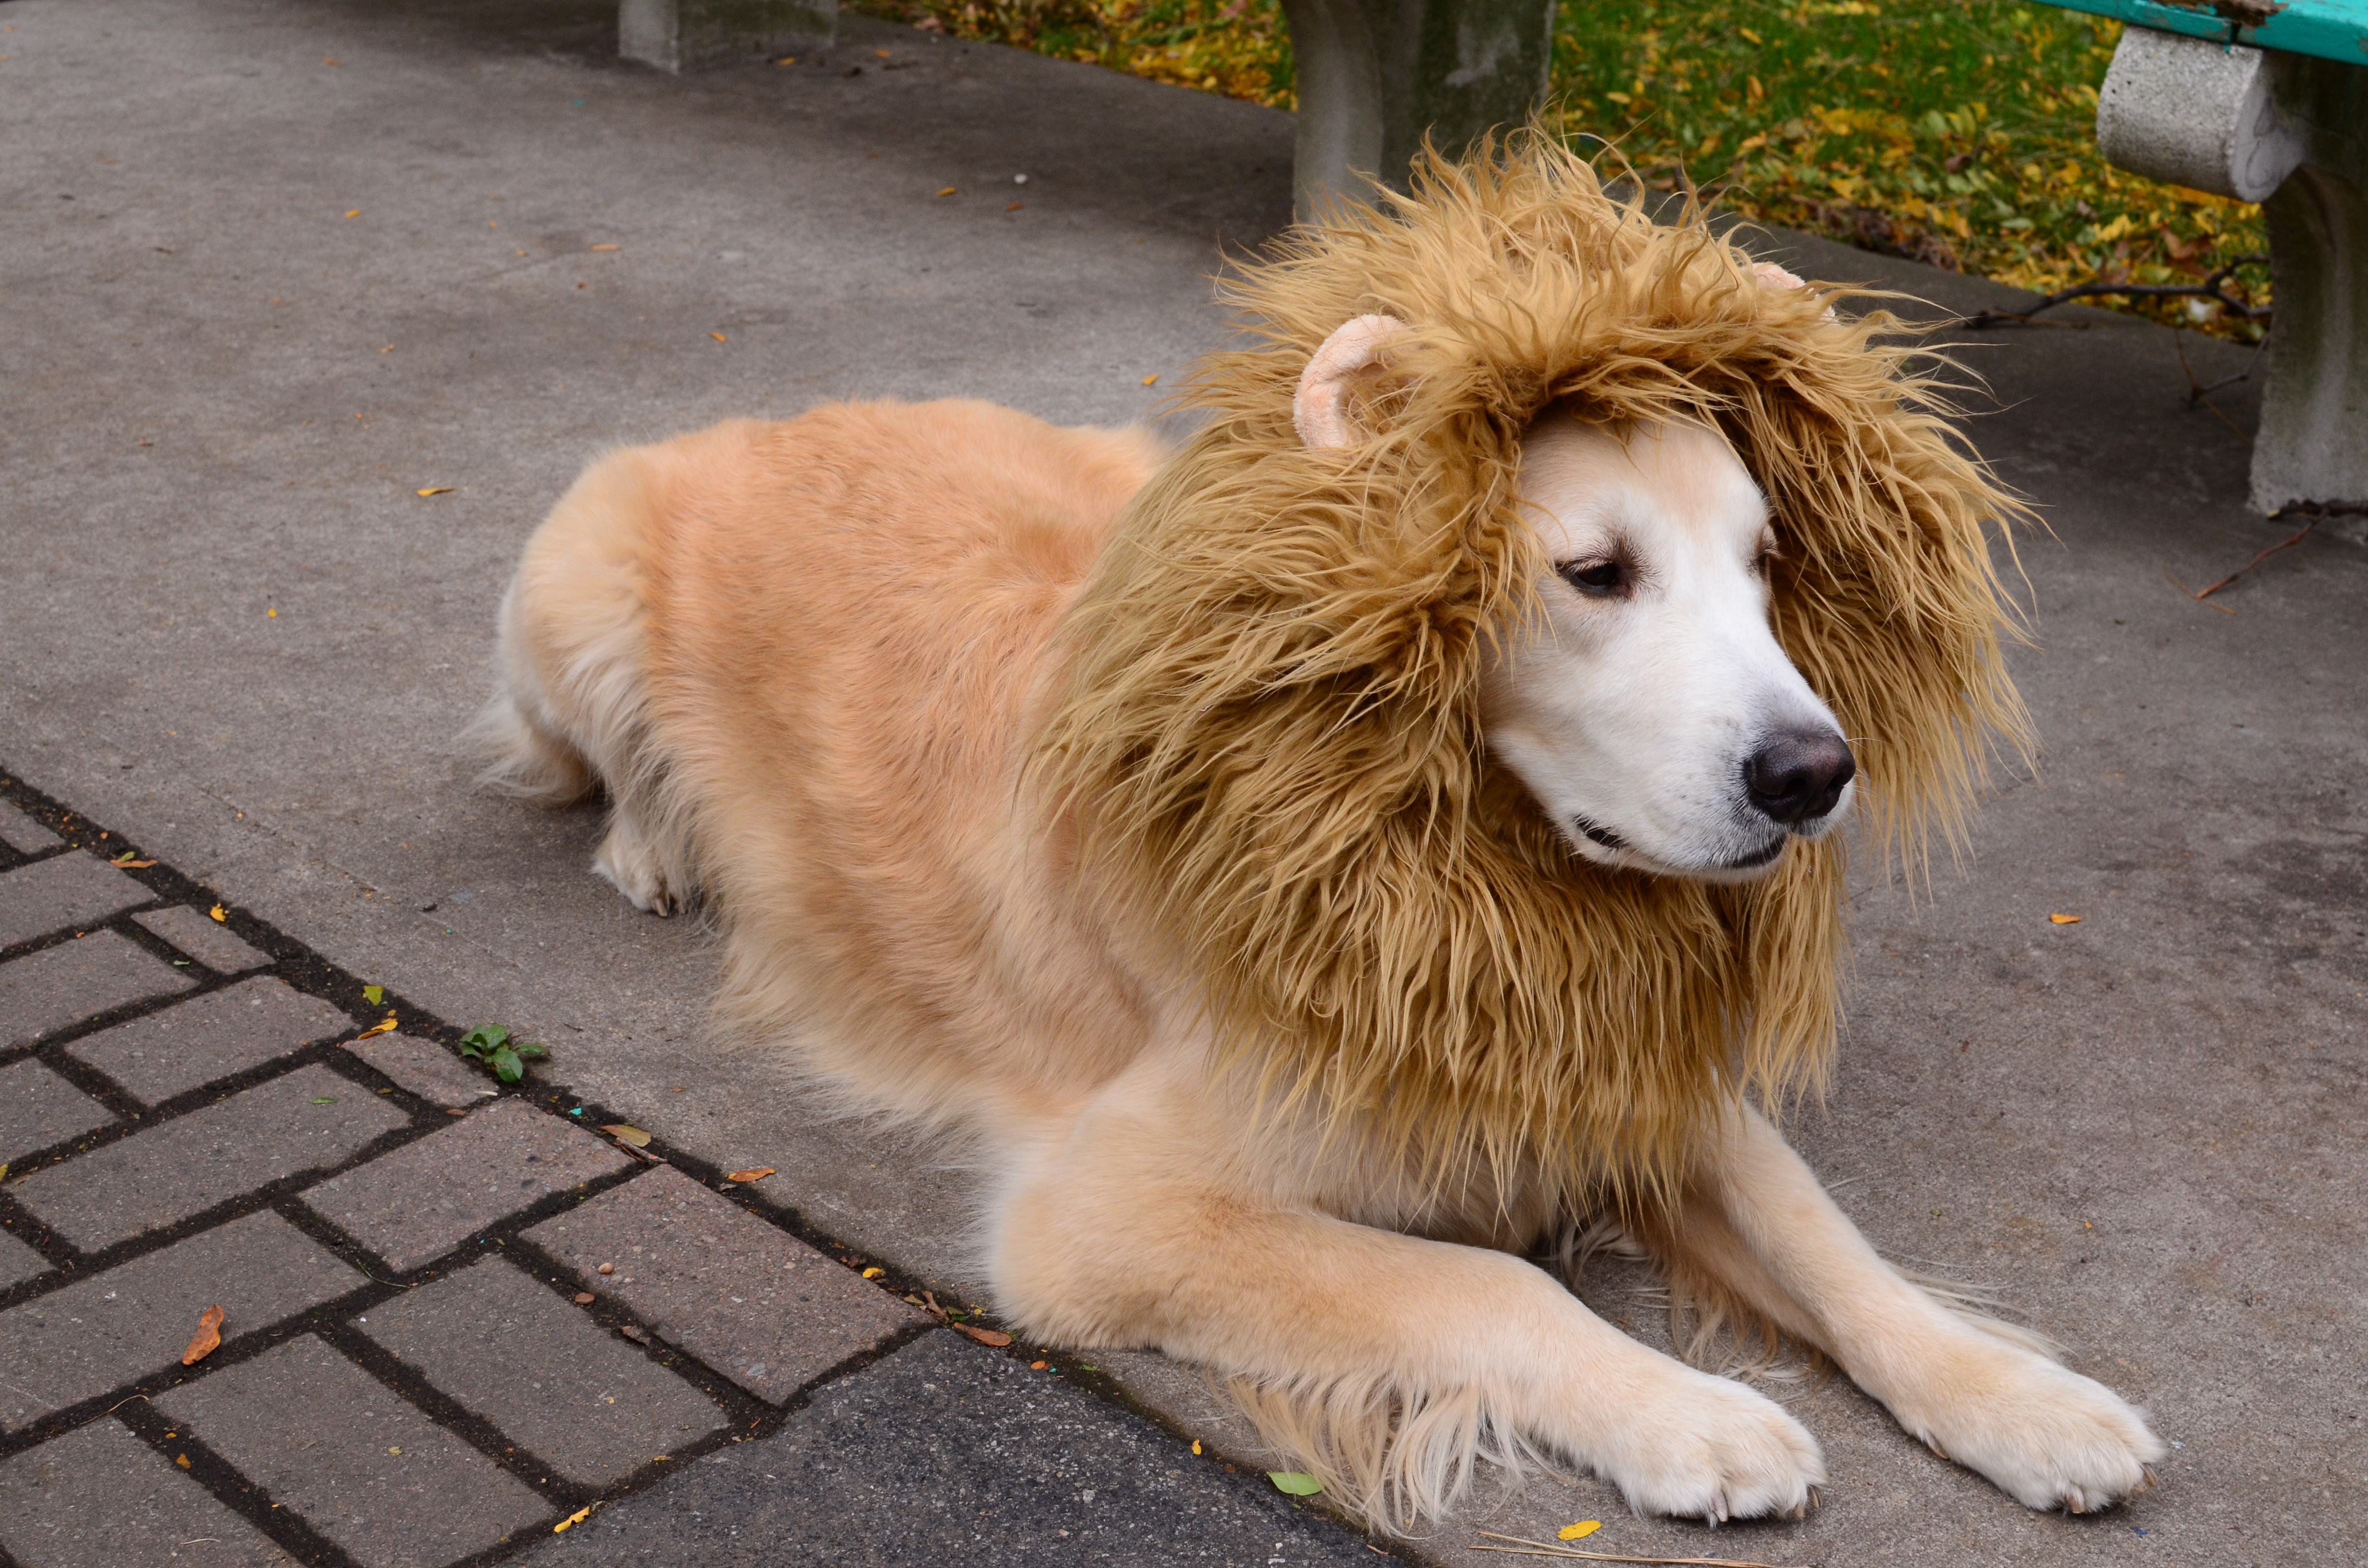 Lion dog costume 5 steps with pictures picture of lion dog costume solutioingenieria Image collections